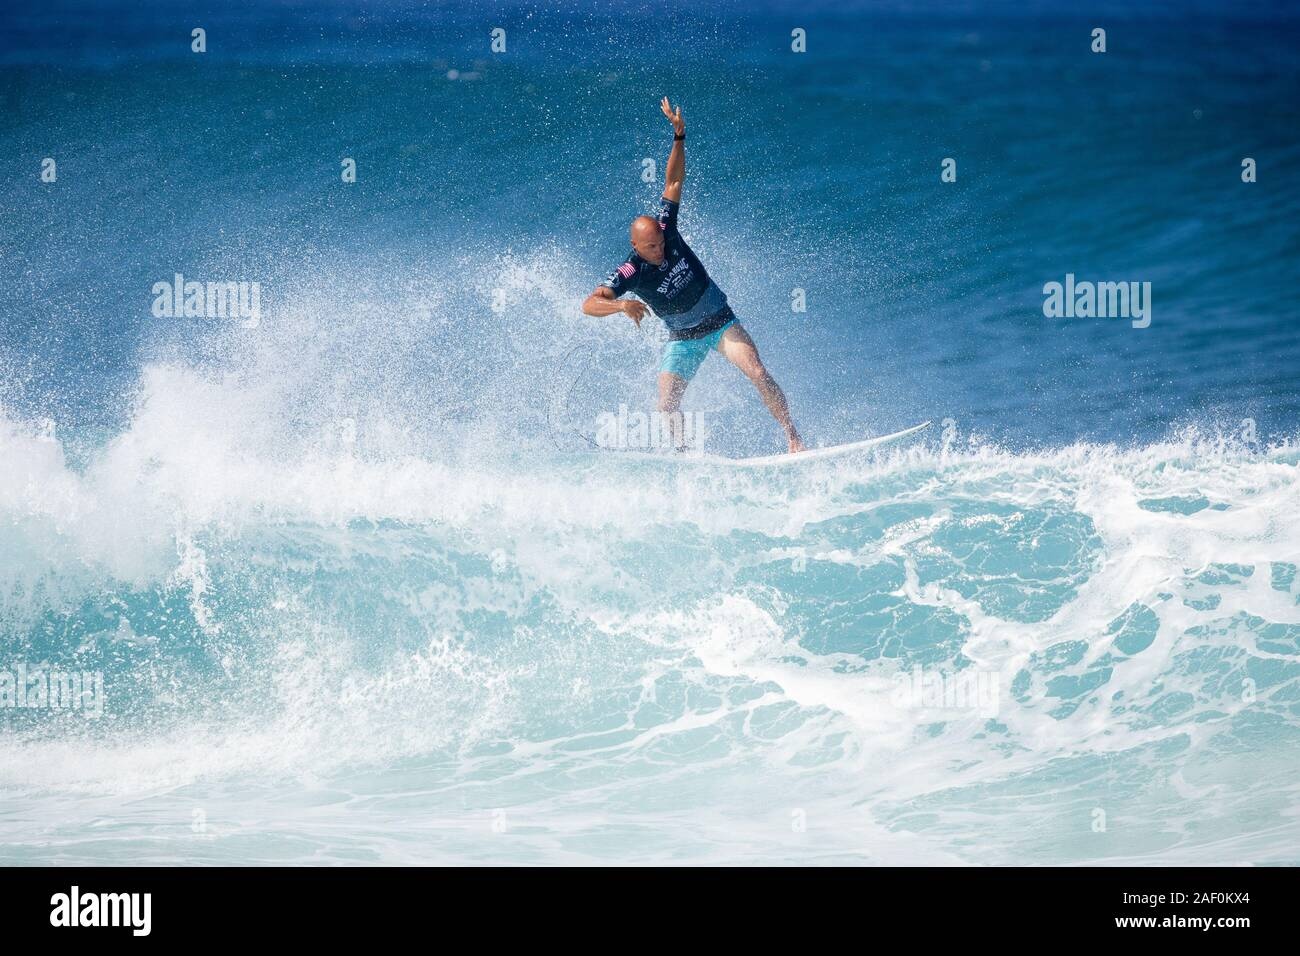 Haleiwa Hi Usa 11th Dec 2019 Kelly Slater Pictured During Heat 8 In The Round Of Explore an array of haleiwa vacation rentals, including houses, bungalows & more bookable online. alamy